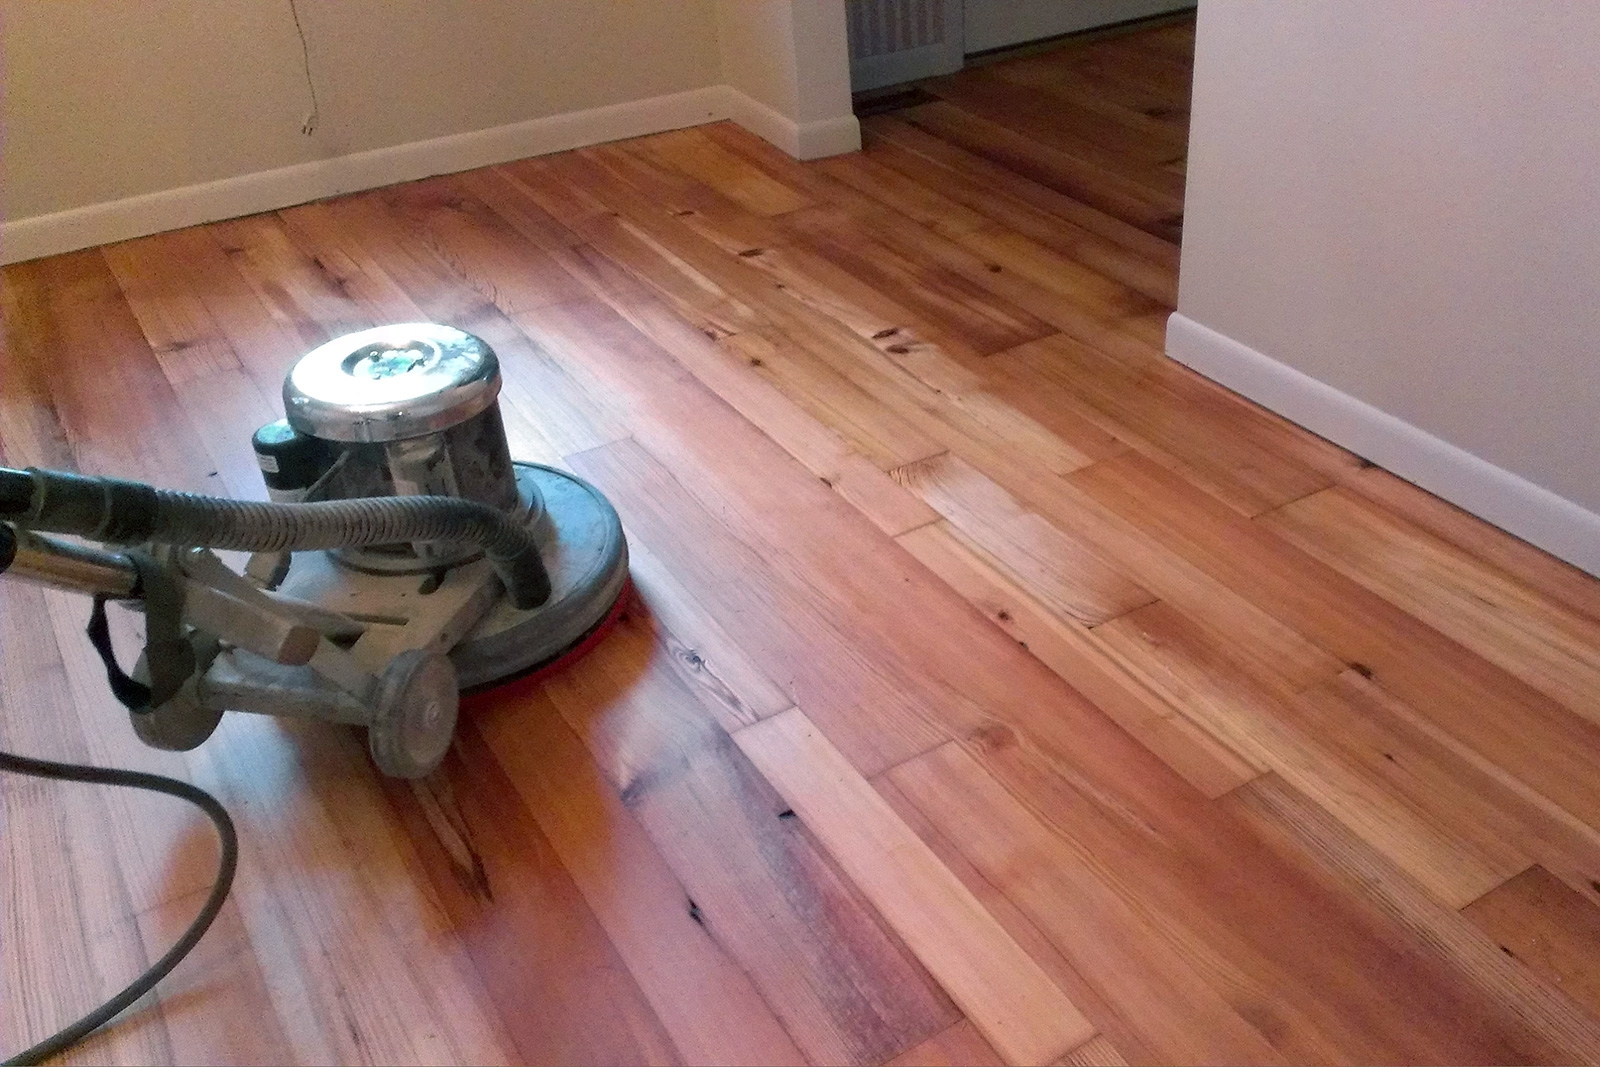 Floor Wax For Old Wood Floors